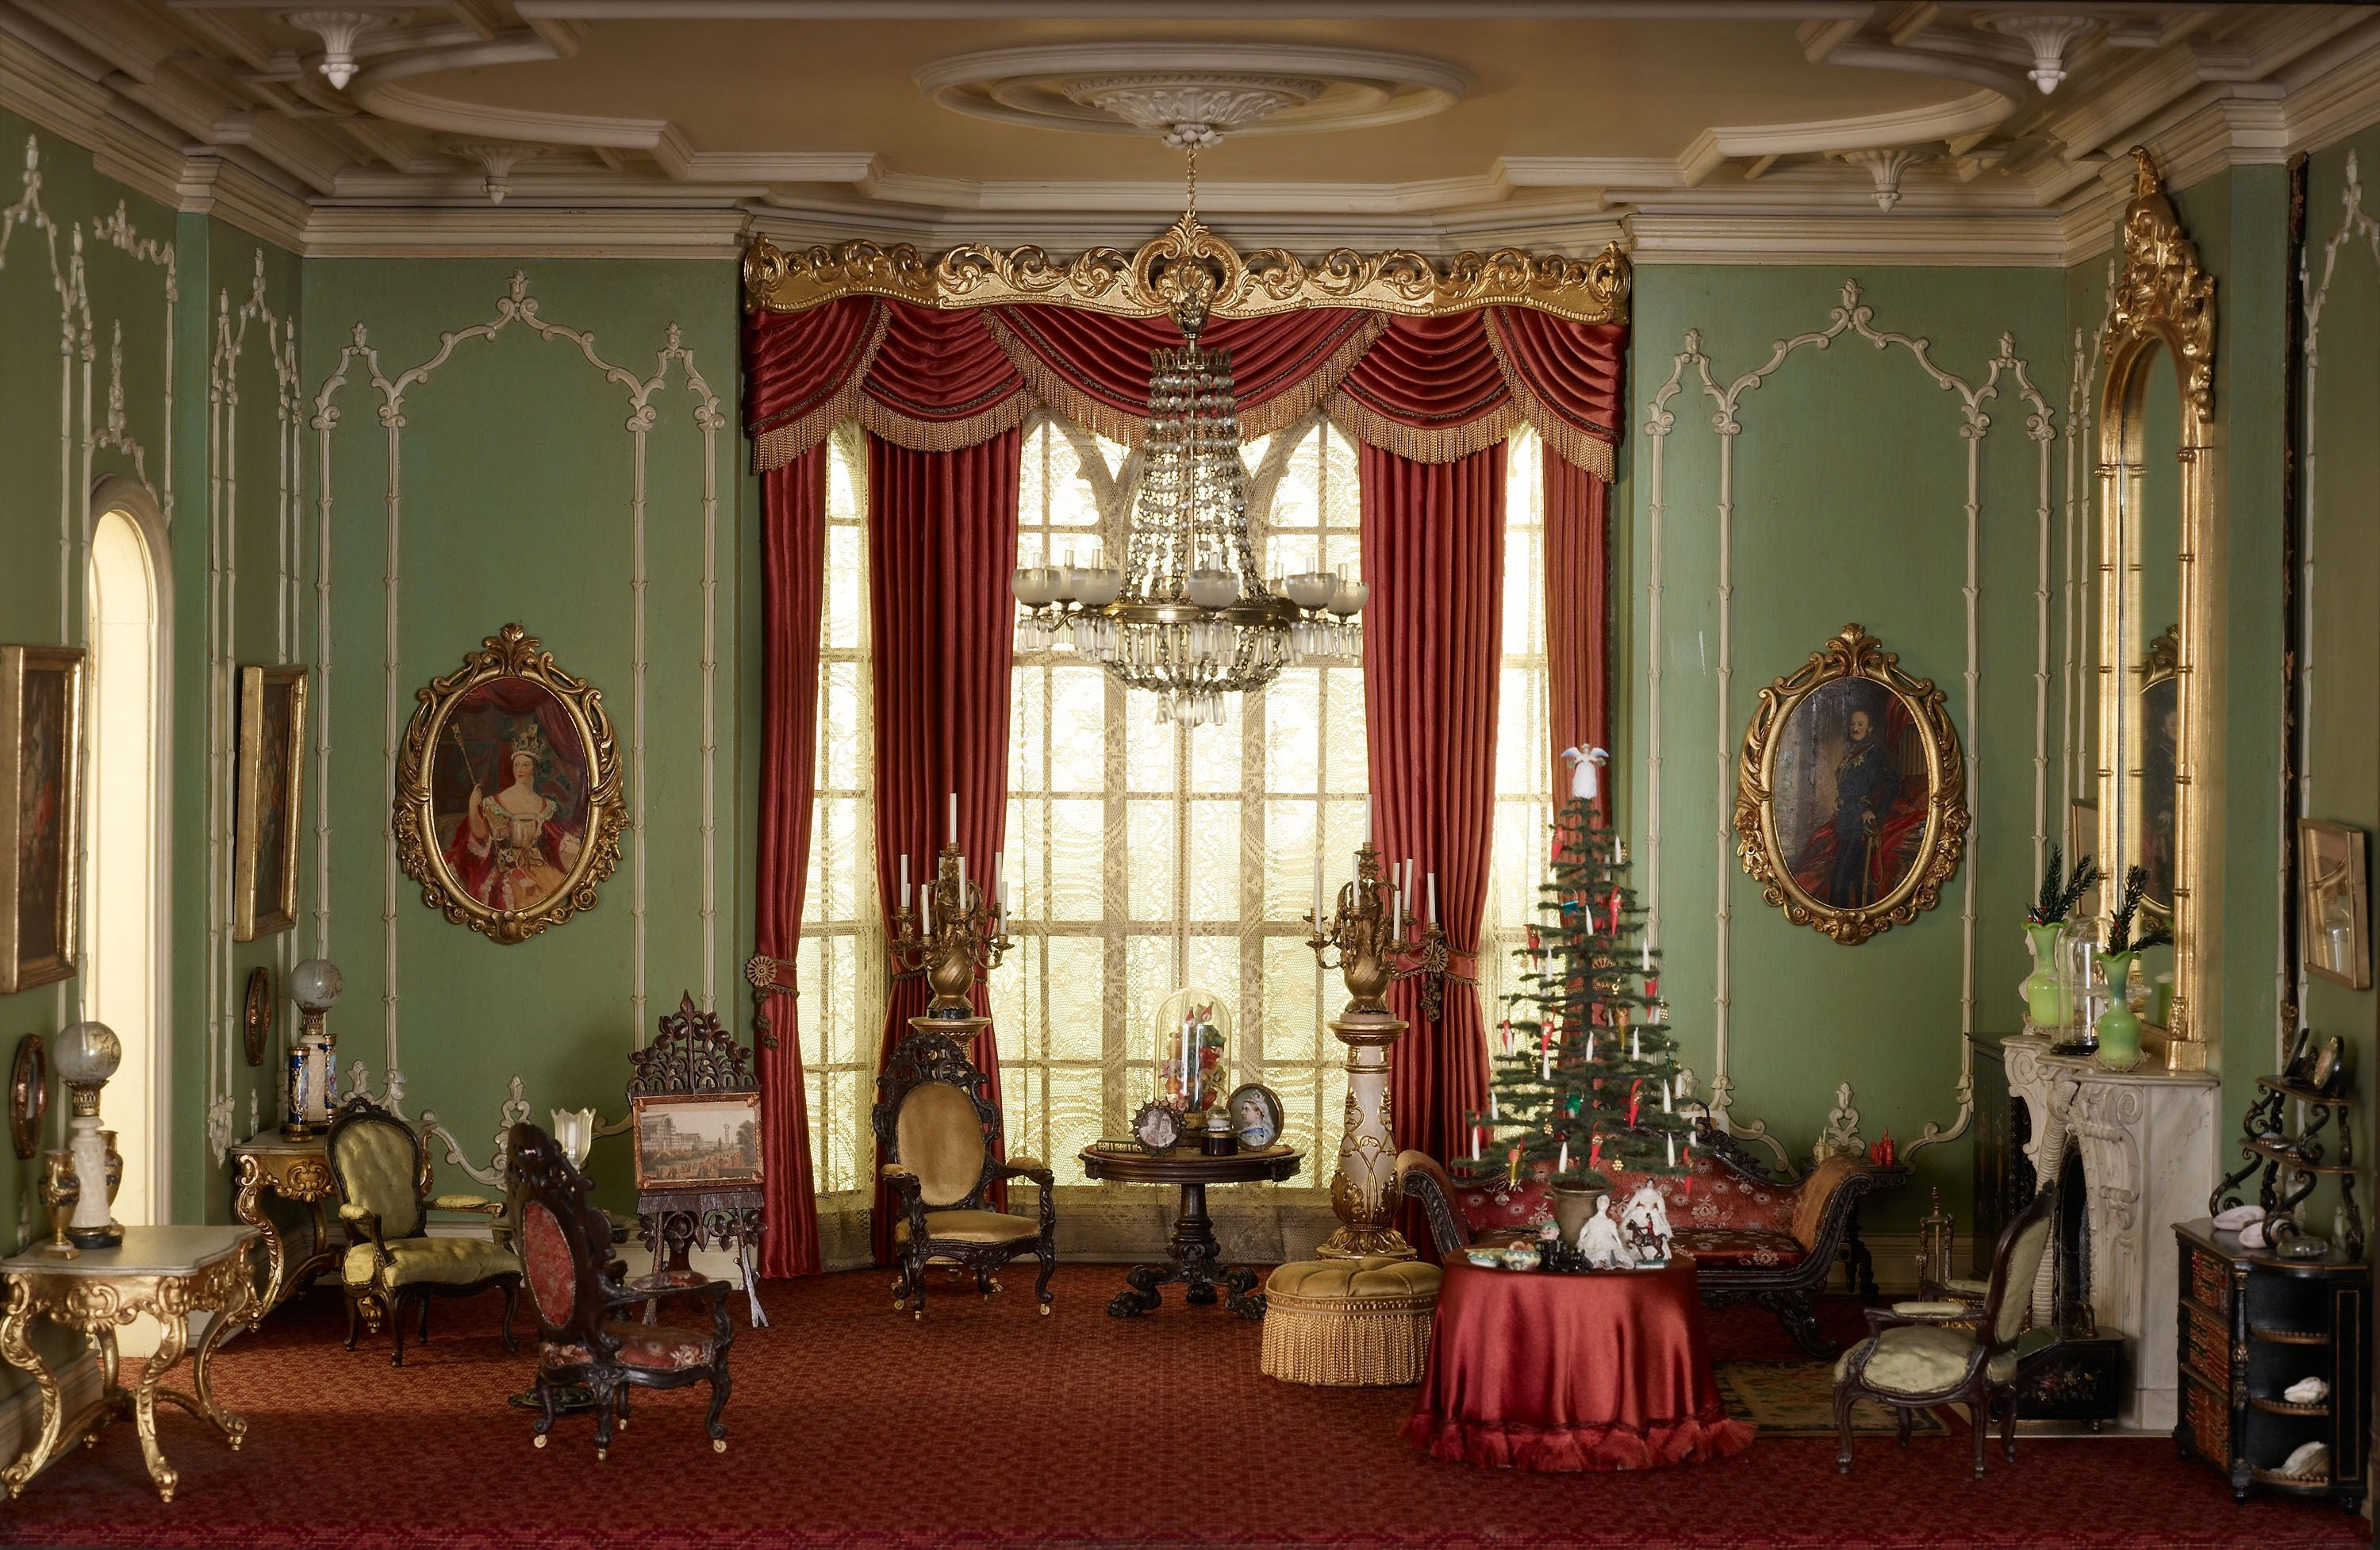 A photo of a miniature ornate English drawing room from the Victorian period decorated for the holidays. The room's green walls, red curtains and carpet, and gold ornamental decoration